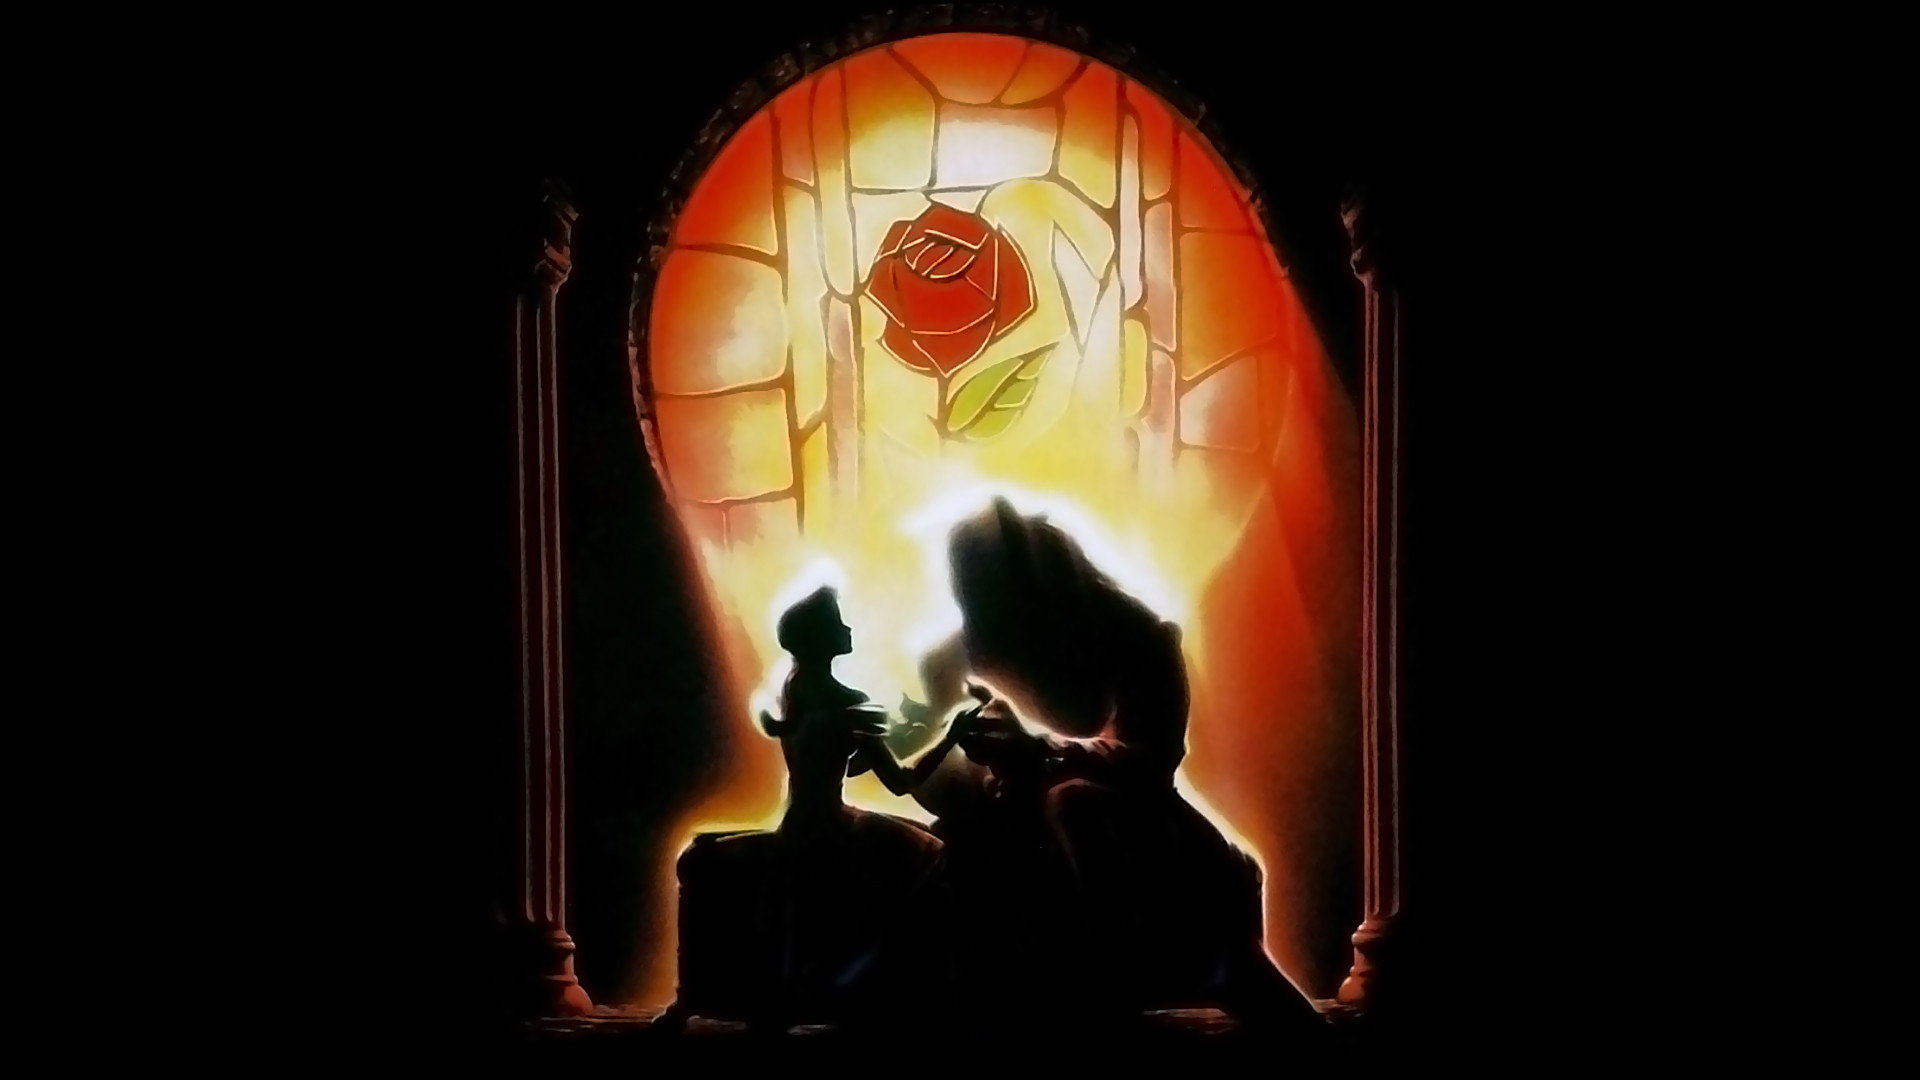 ... - Beauty And The Beast Background Beauty And The Beast Wallpaper For